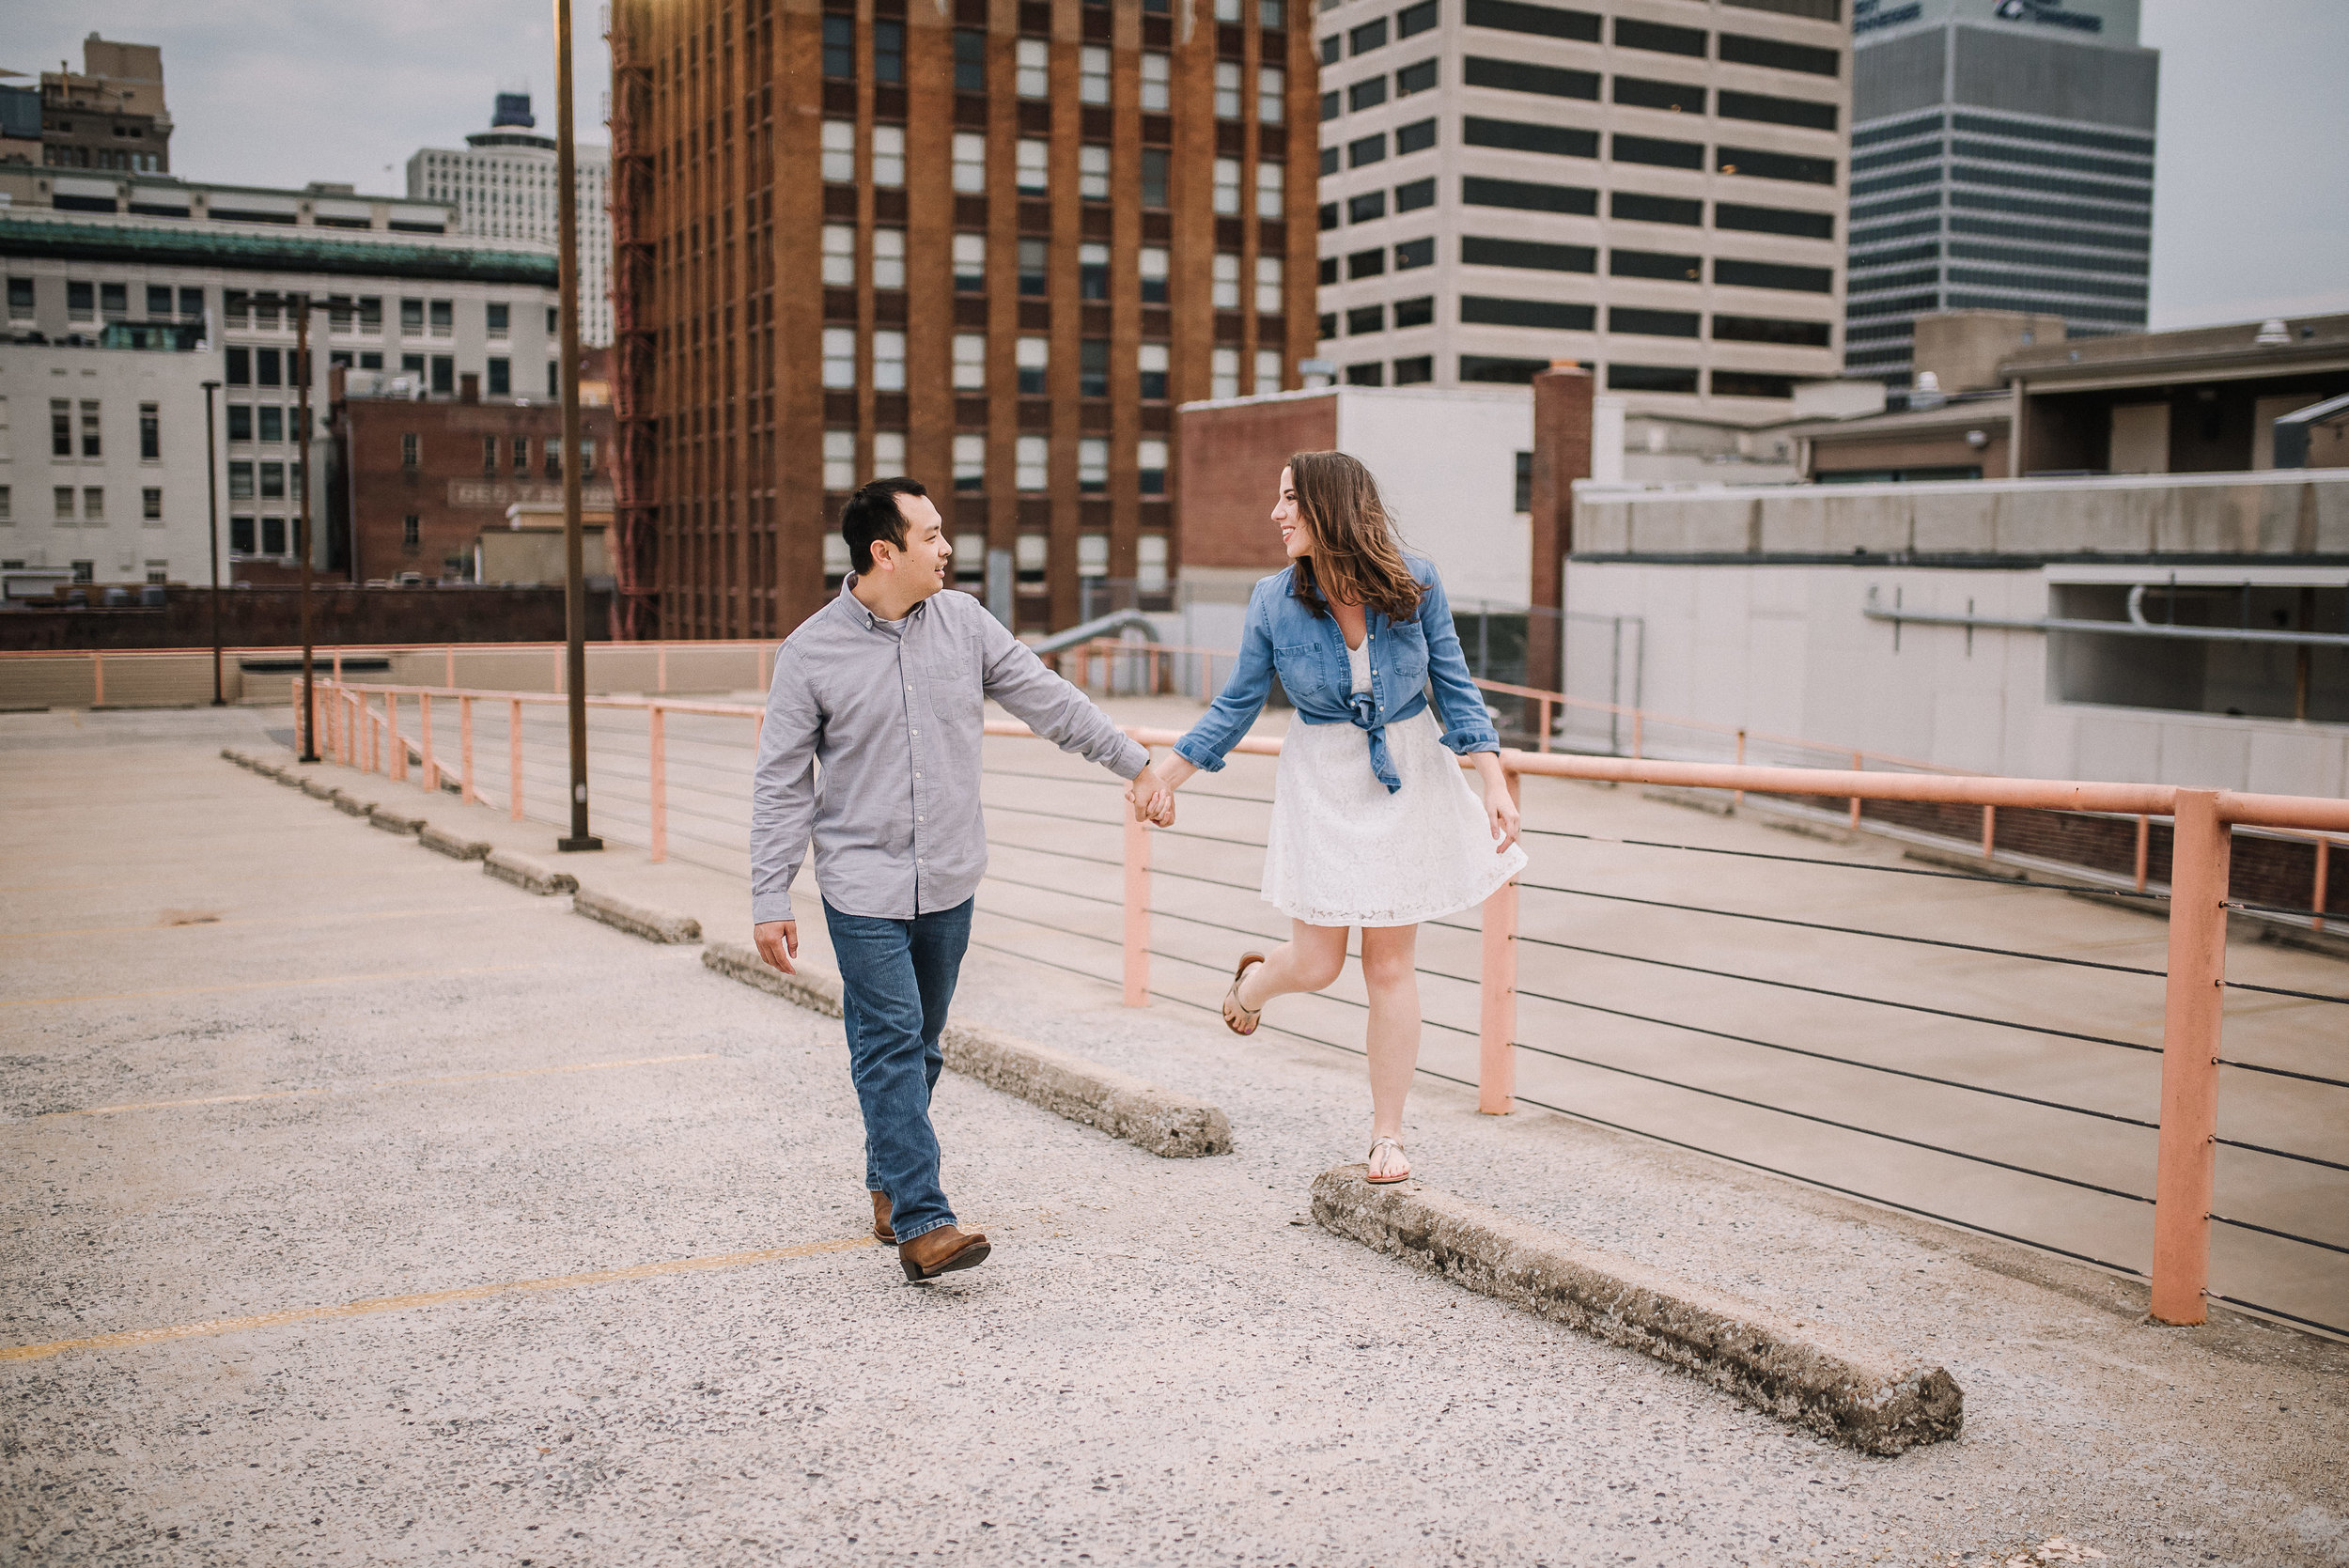 Jenny&Patrick_Downtown Memphis Engagement_Ashley Benham Photography-142.jpg